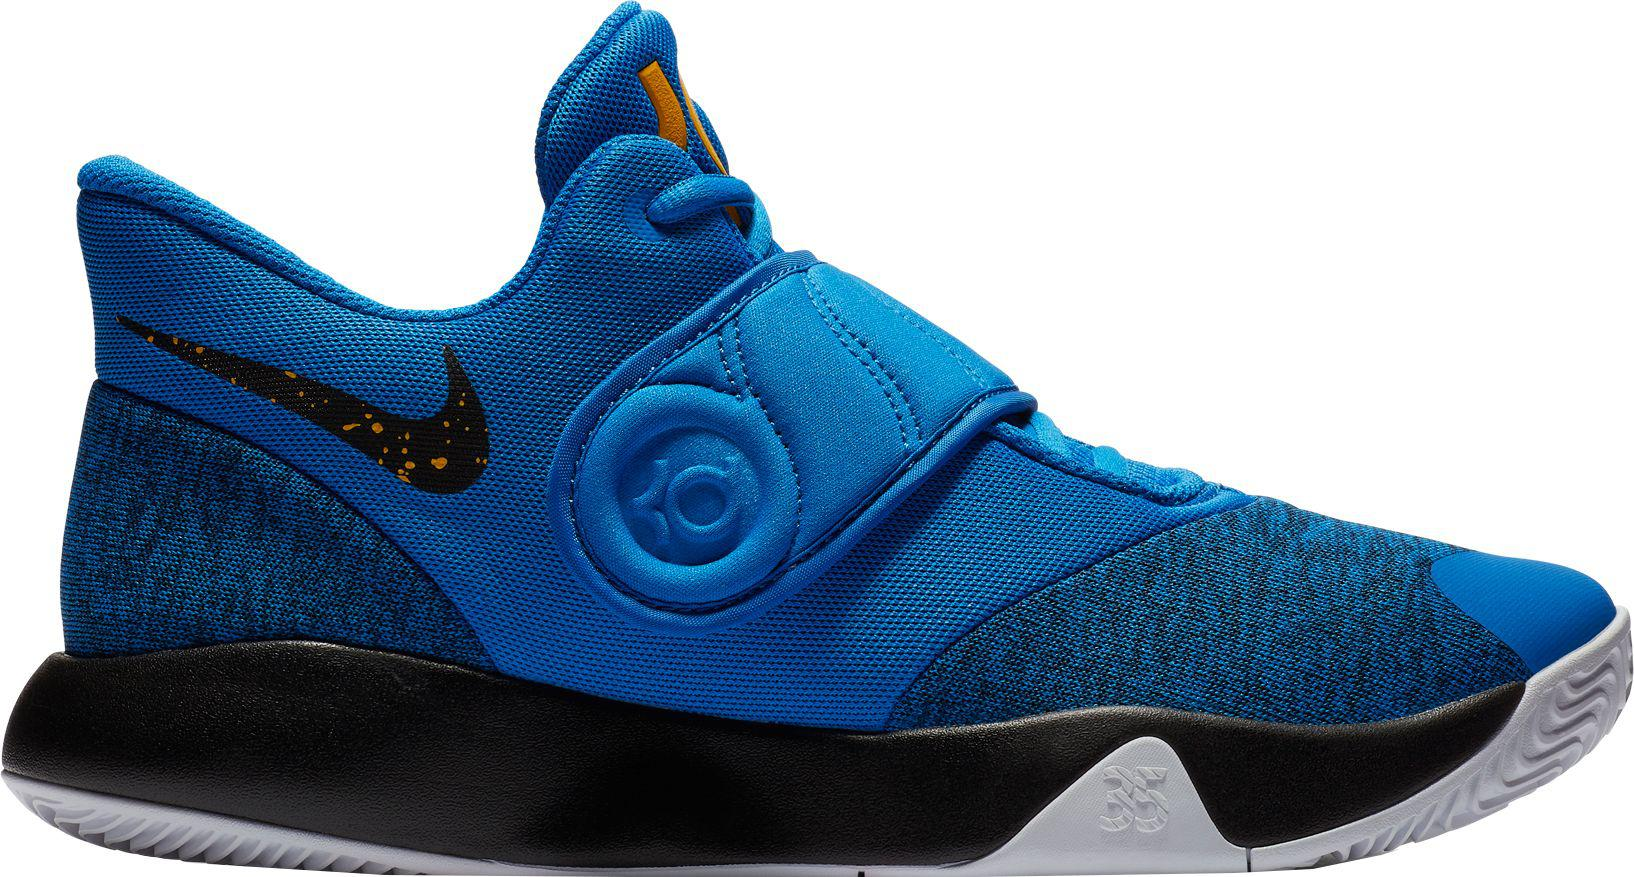 competitive price 20251 2e3c2 Lyst - Nike Kd Trey 5 Vi Basketball Shoes in Blue for Men